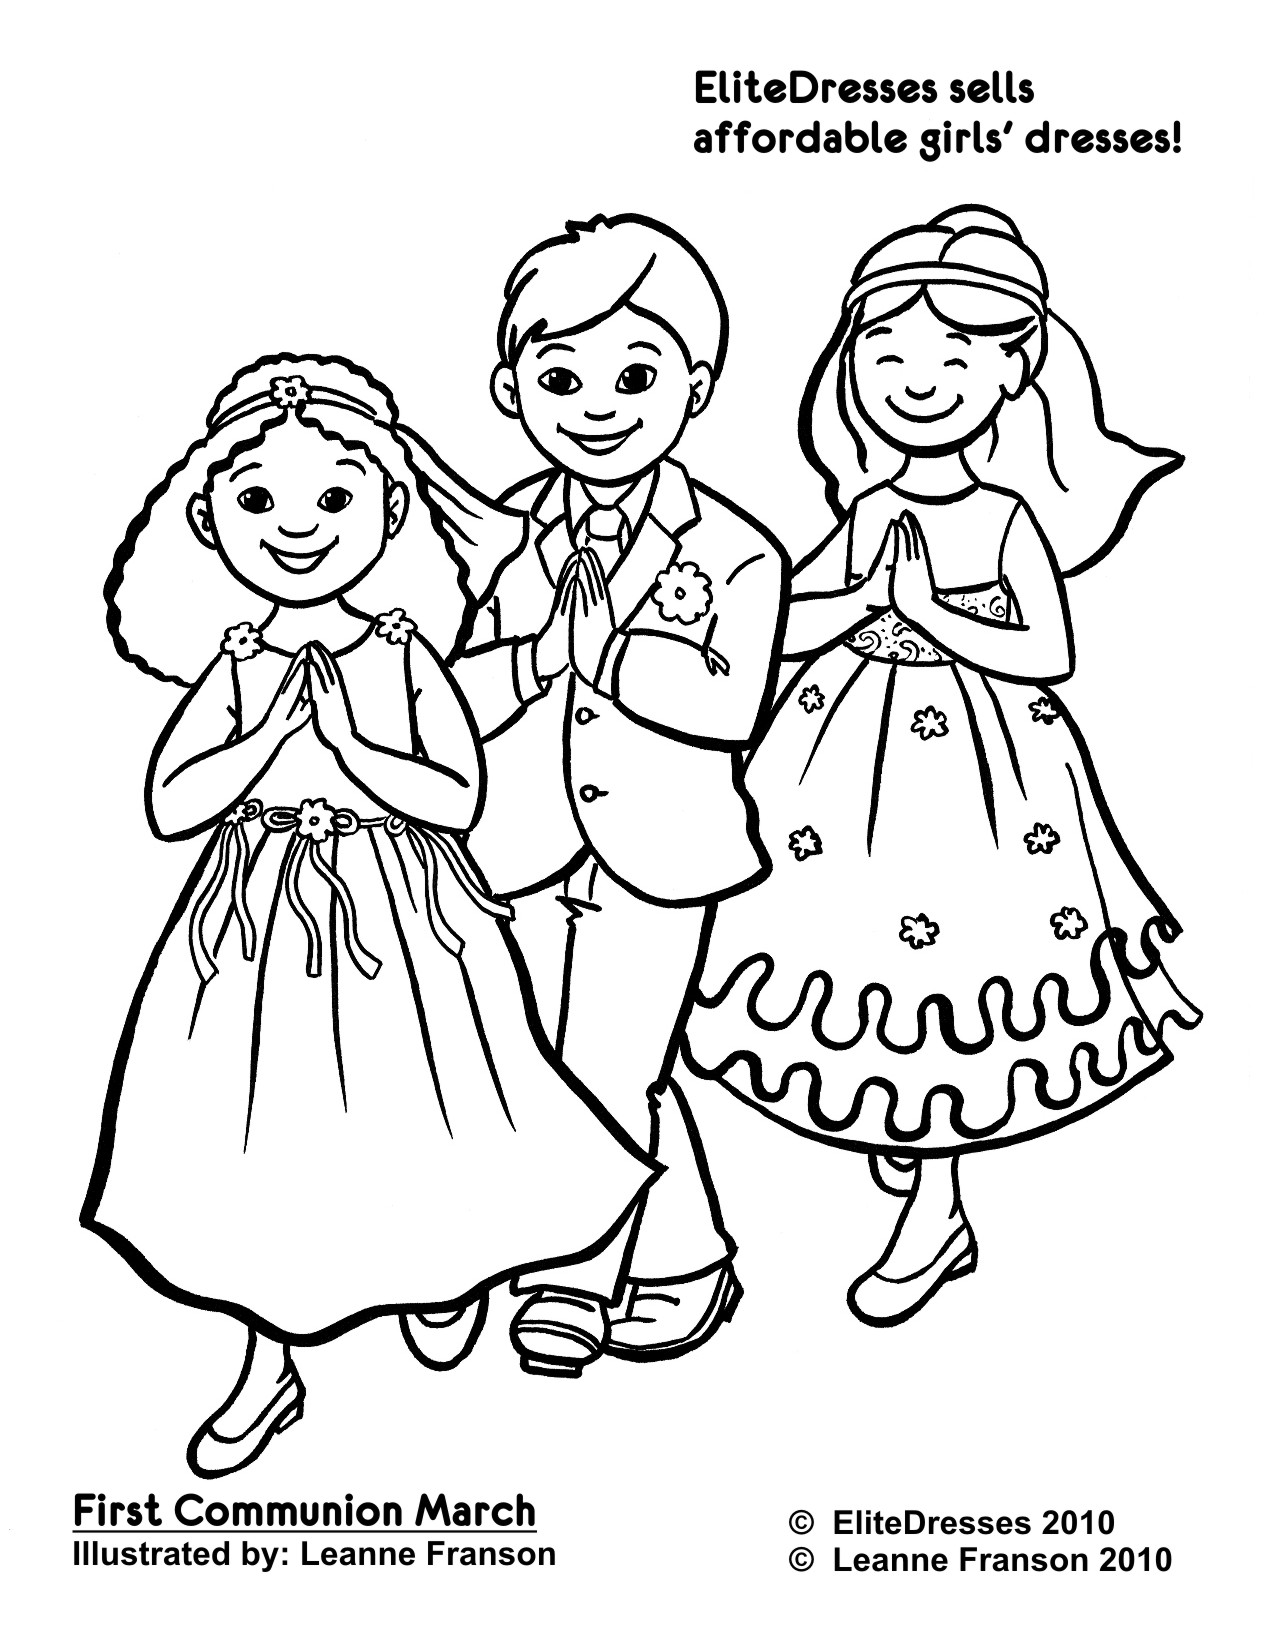 First Communion Dress Coloring Pages